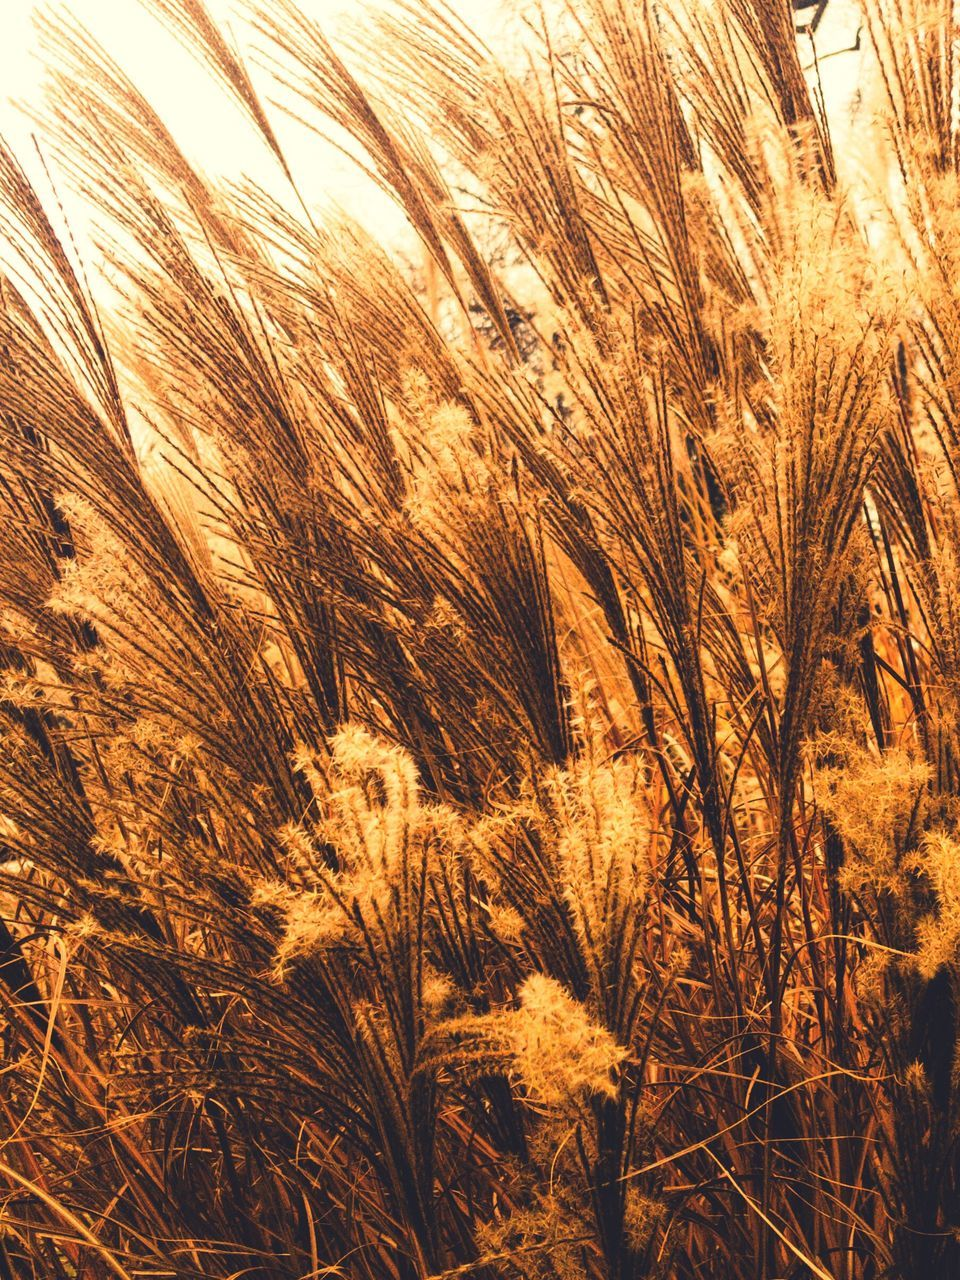 growth, agriculture, nature, field, plant, outdoors, tranquility, no people, day, tranquil scene, cereal plant, beauty in nature, grass, wheat, rural scene, backgrounds, close-up